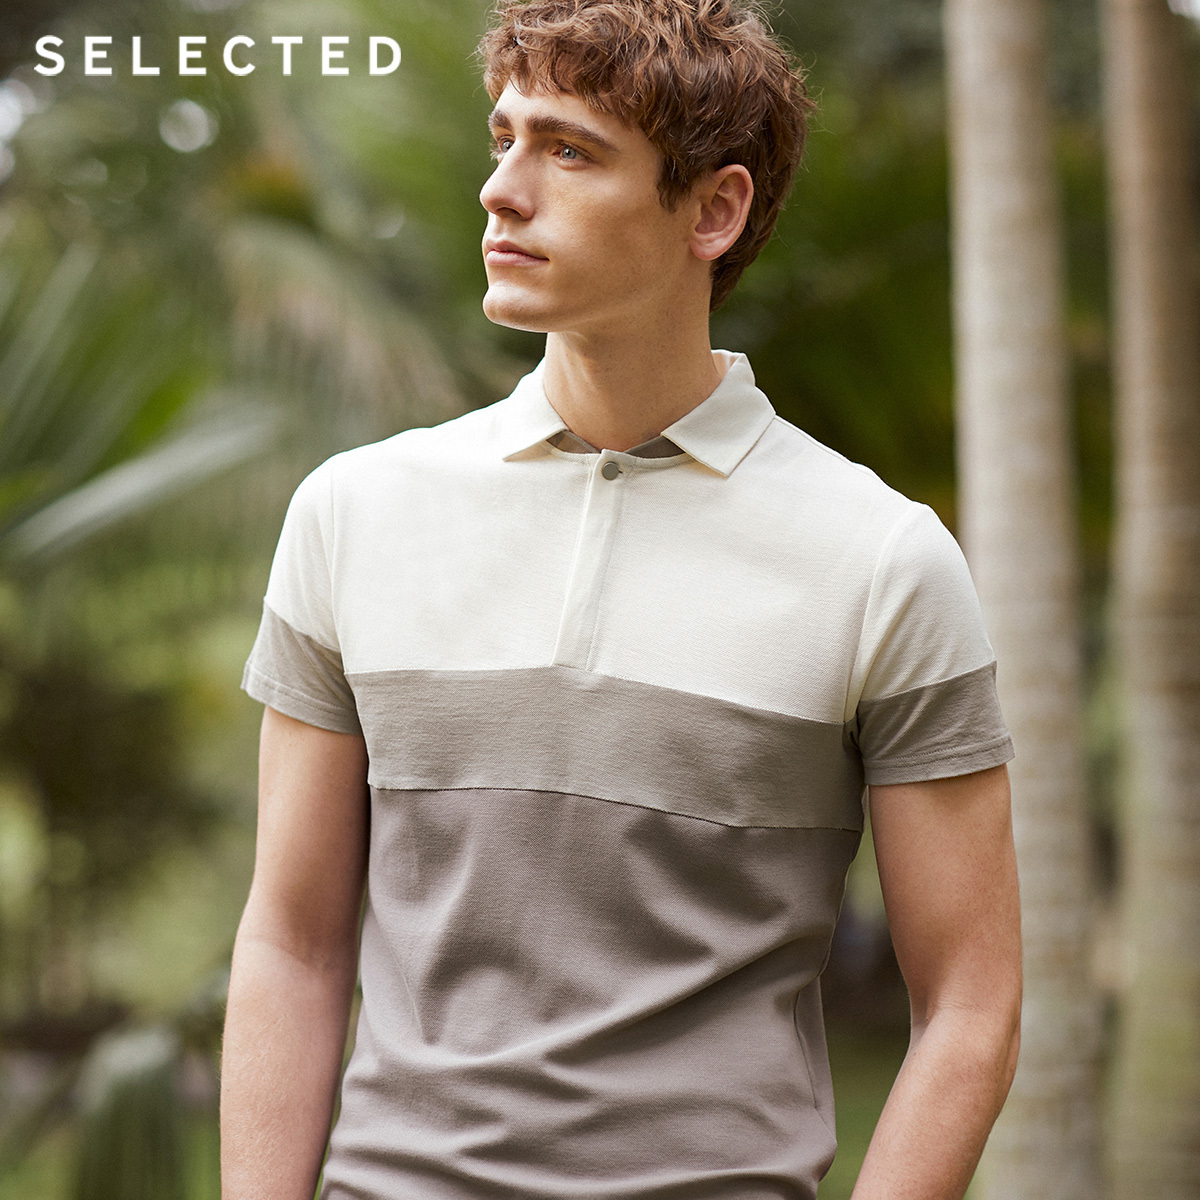 CD31SELECTED Slade-print stitched male poloshirt lapel short-sleeved T-shirt S) 41823Z517